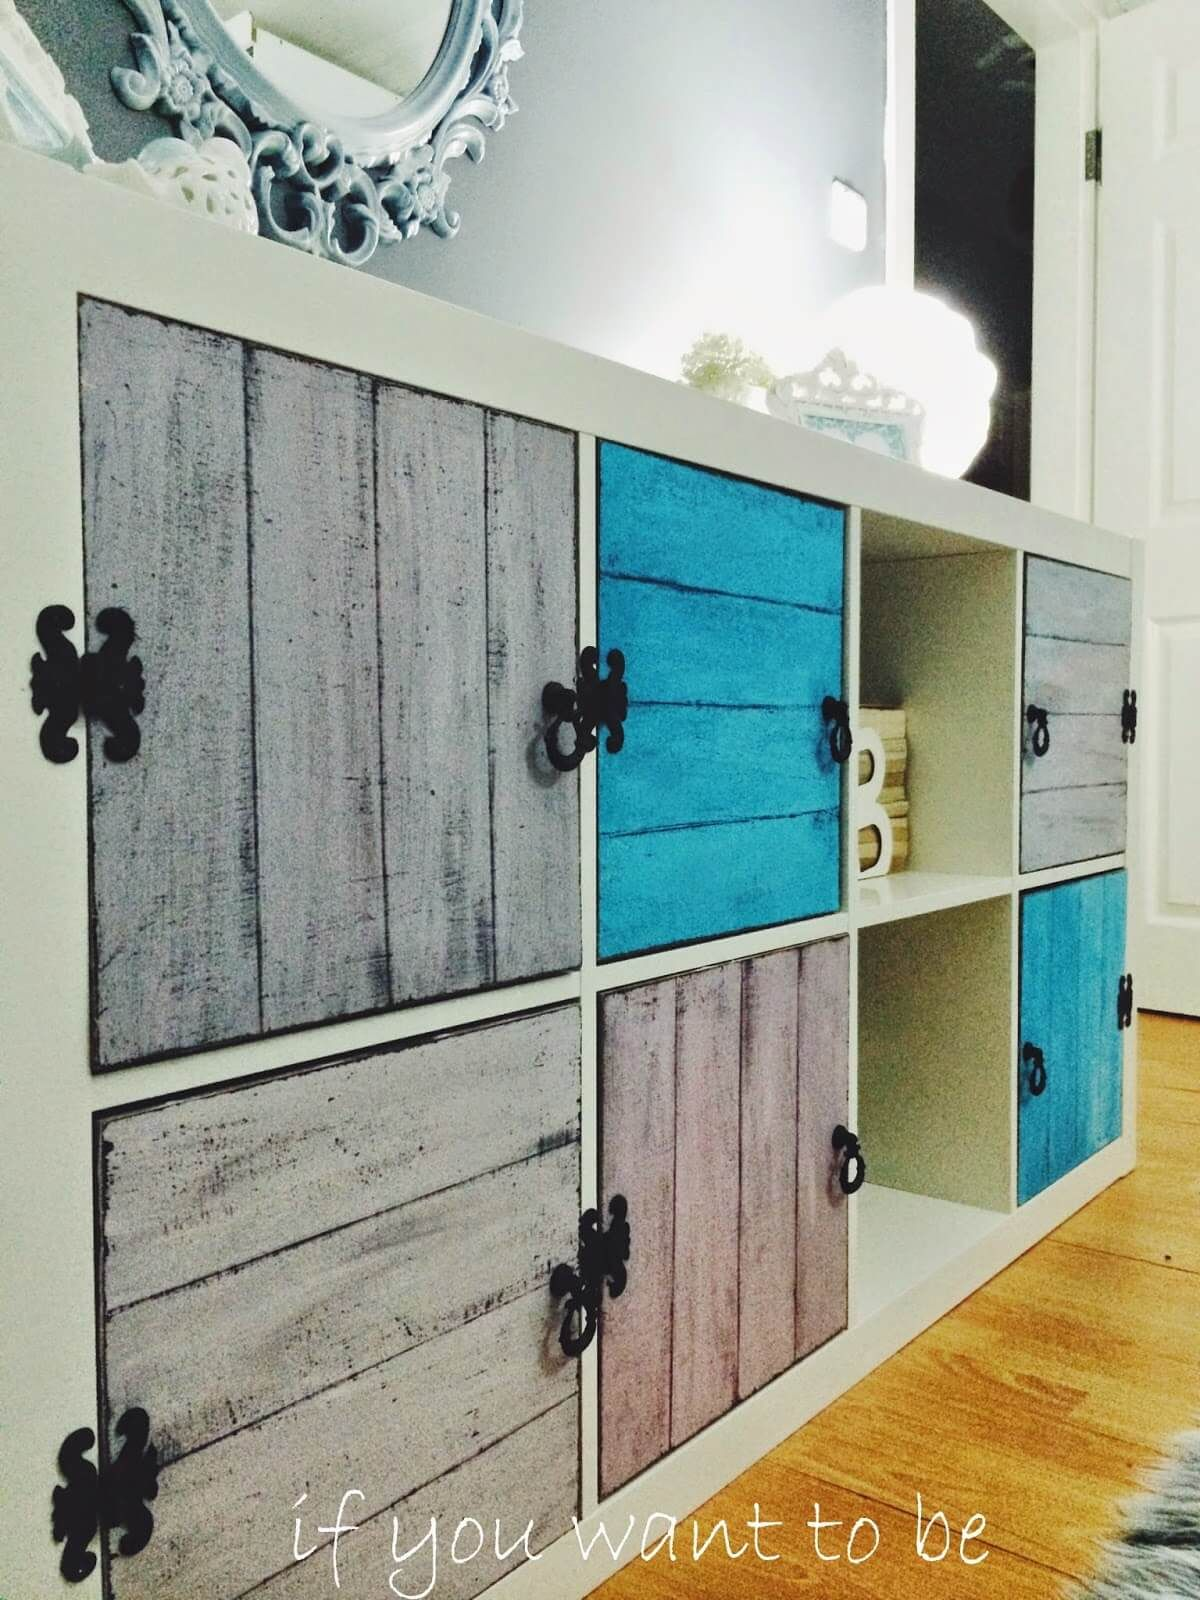 Ikea Möbel Bekleben Rustic Wall Cabinet With Fancy Black Hinges | Diy Projects